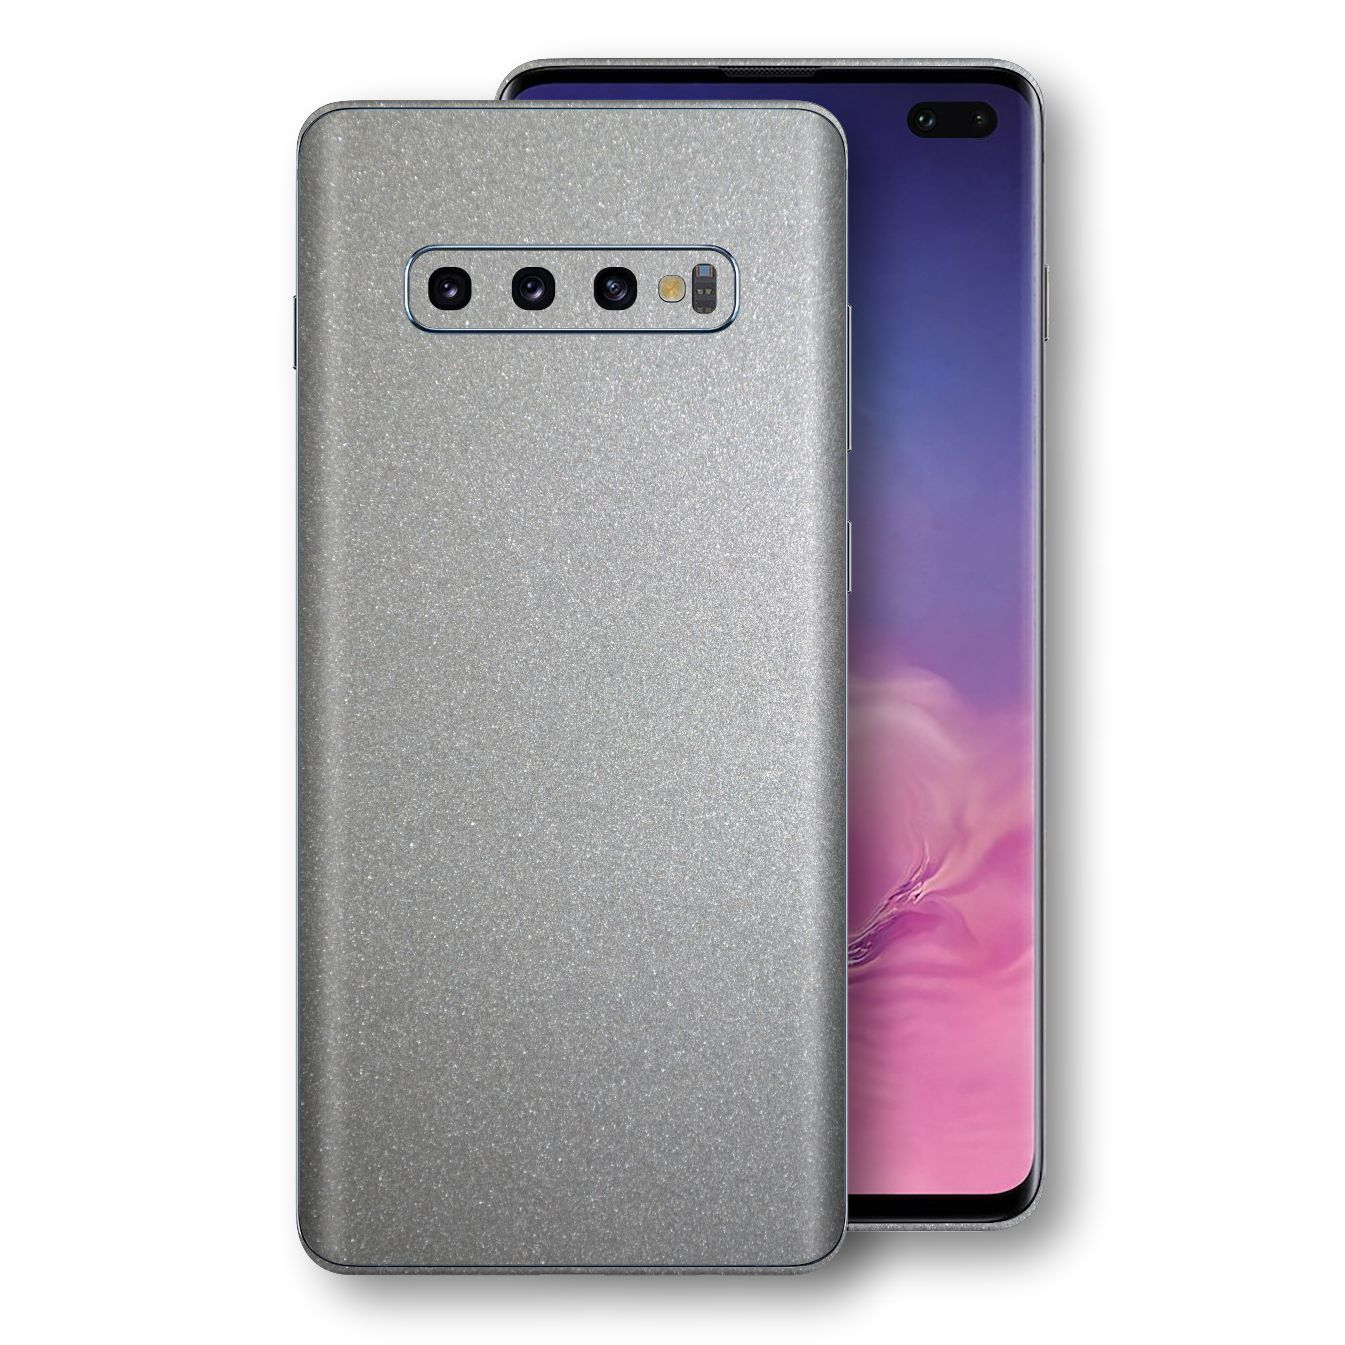 Samsung Galaxy S10+ PLUS Silver Glossy Metallic Skin, Decal, Wrap, Protector, Cover by EasySkinz | EasySkinz.com